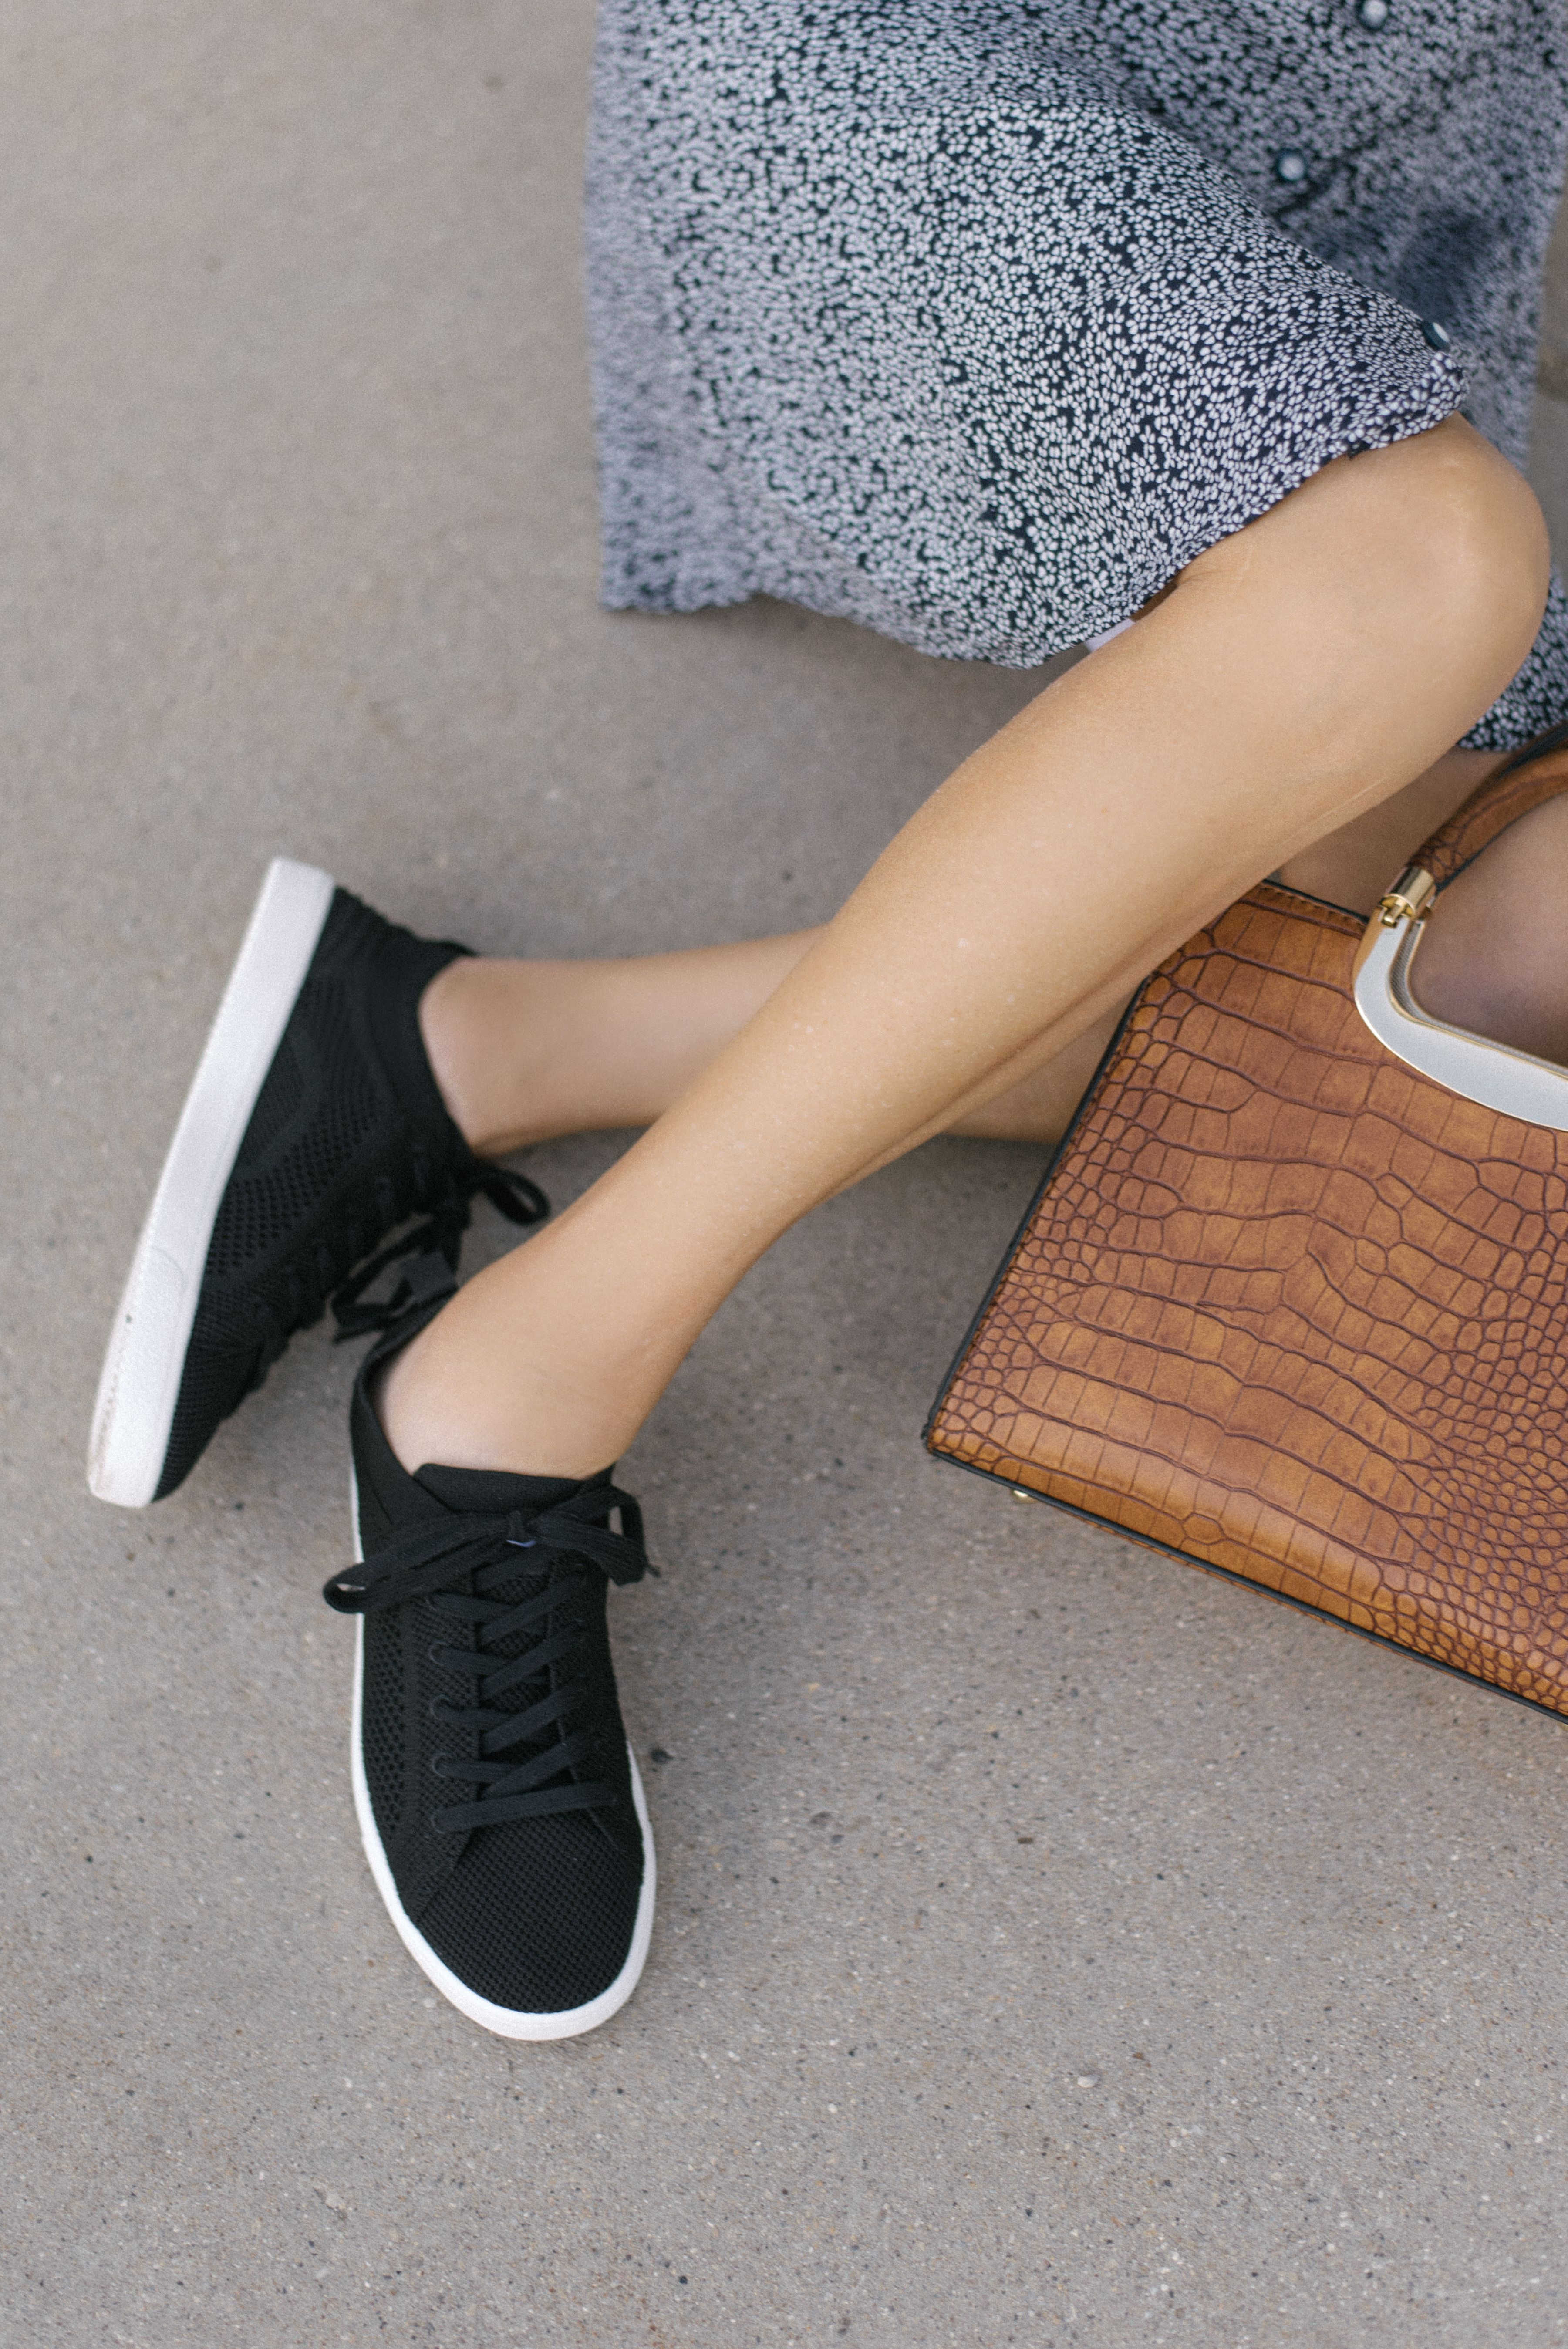 Black Sneakers Black Sneakers Outfit Dress With Sneakers Minimalist Fashion Women [ 5394 x 3601 Pixel ]